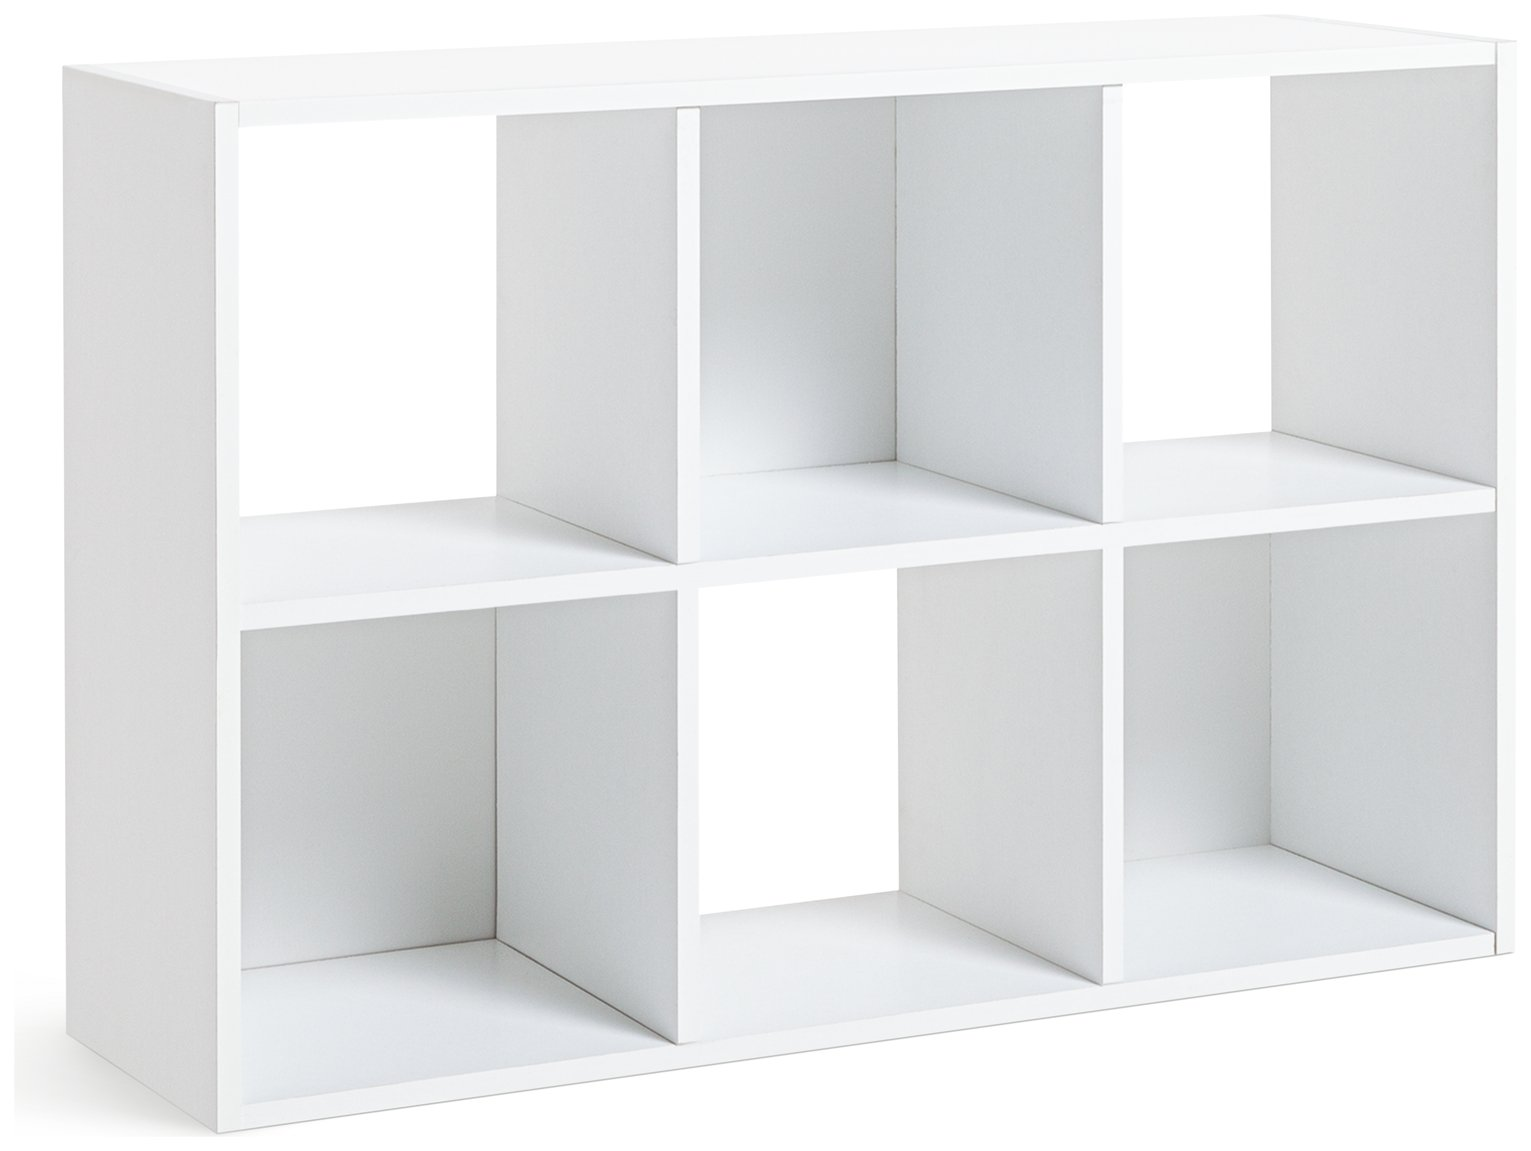 Image result for storage cube unit